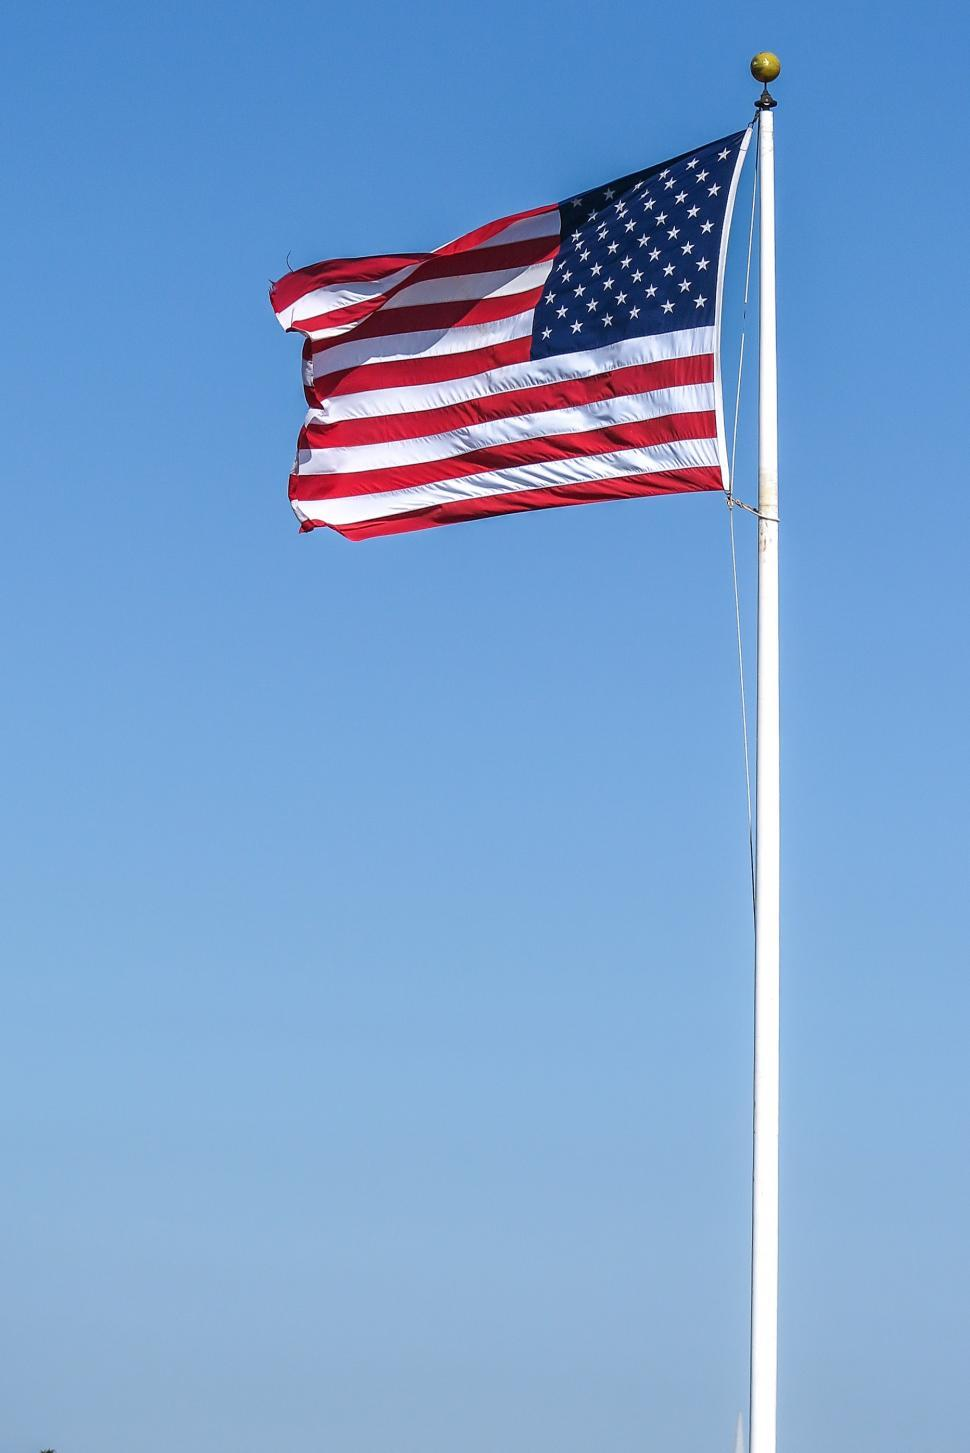 Download Free Stock HD Photo of United States Flag Online